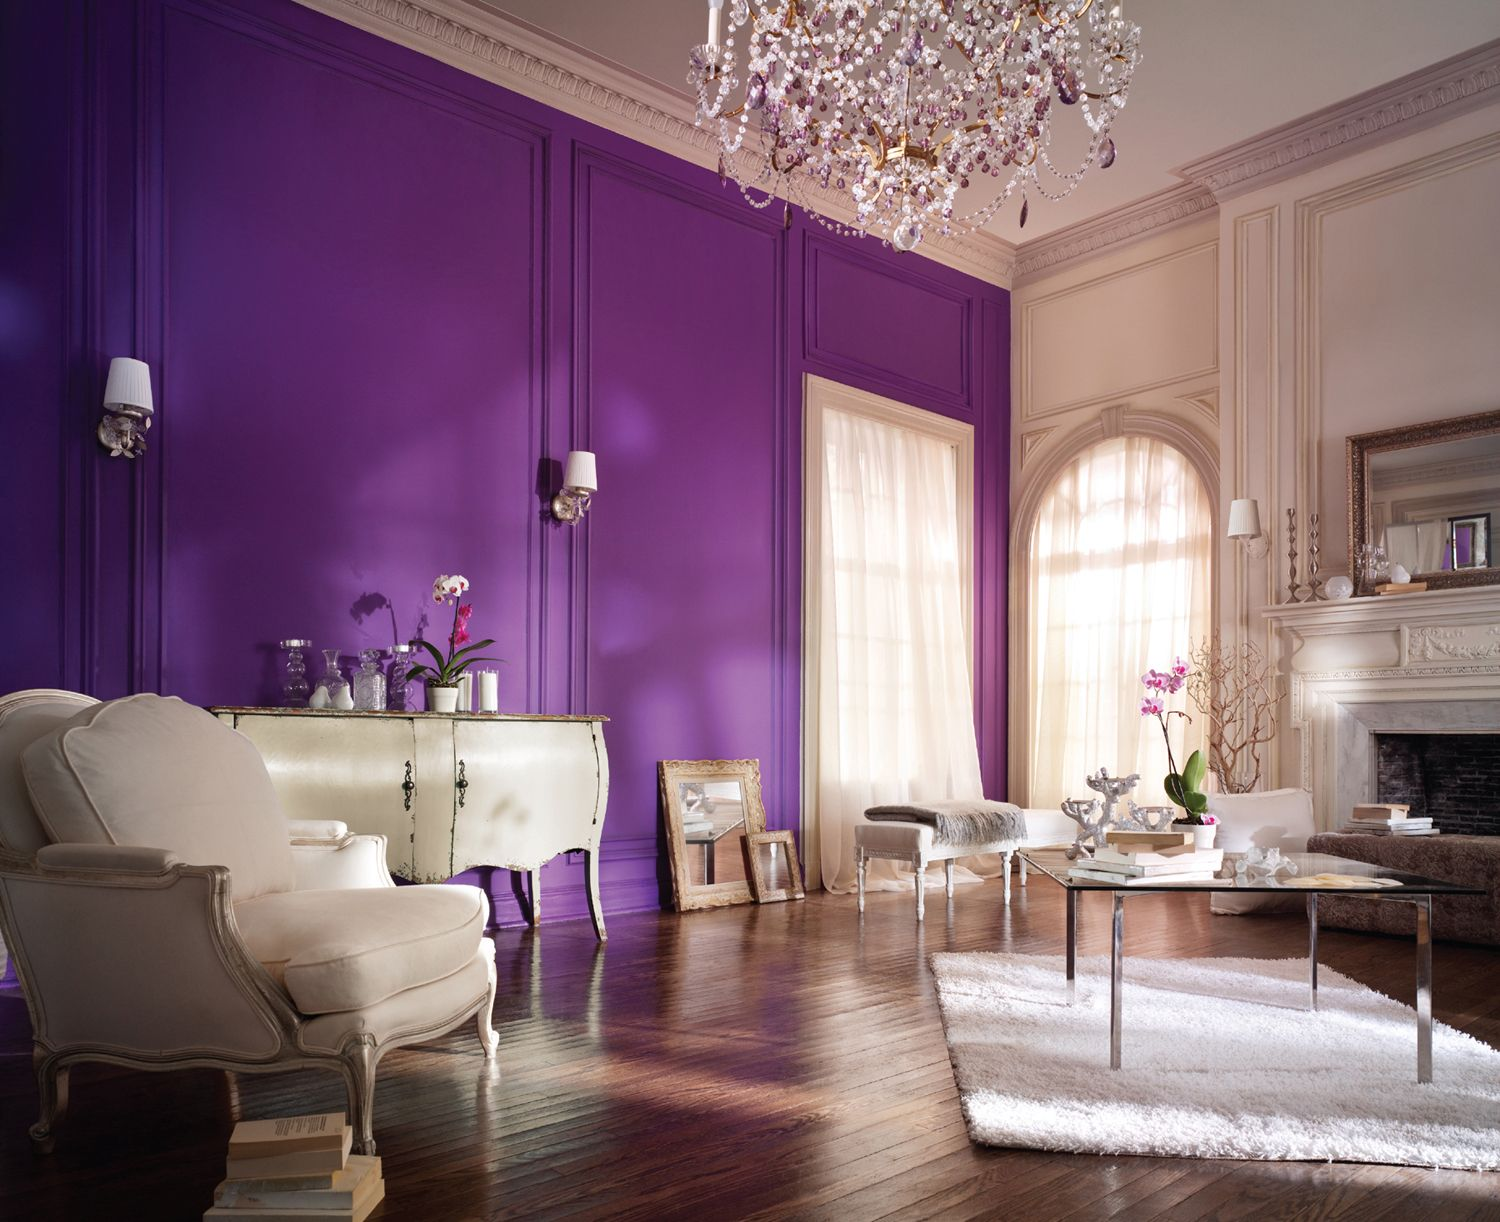 Purple room paint ideas - 1000 Images About Every Room In The House On Living